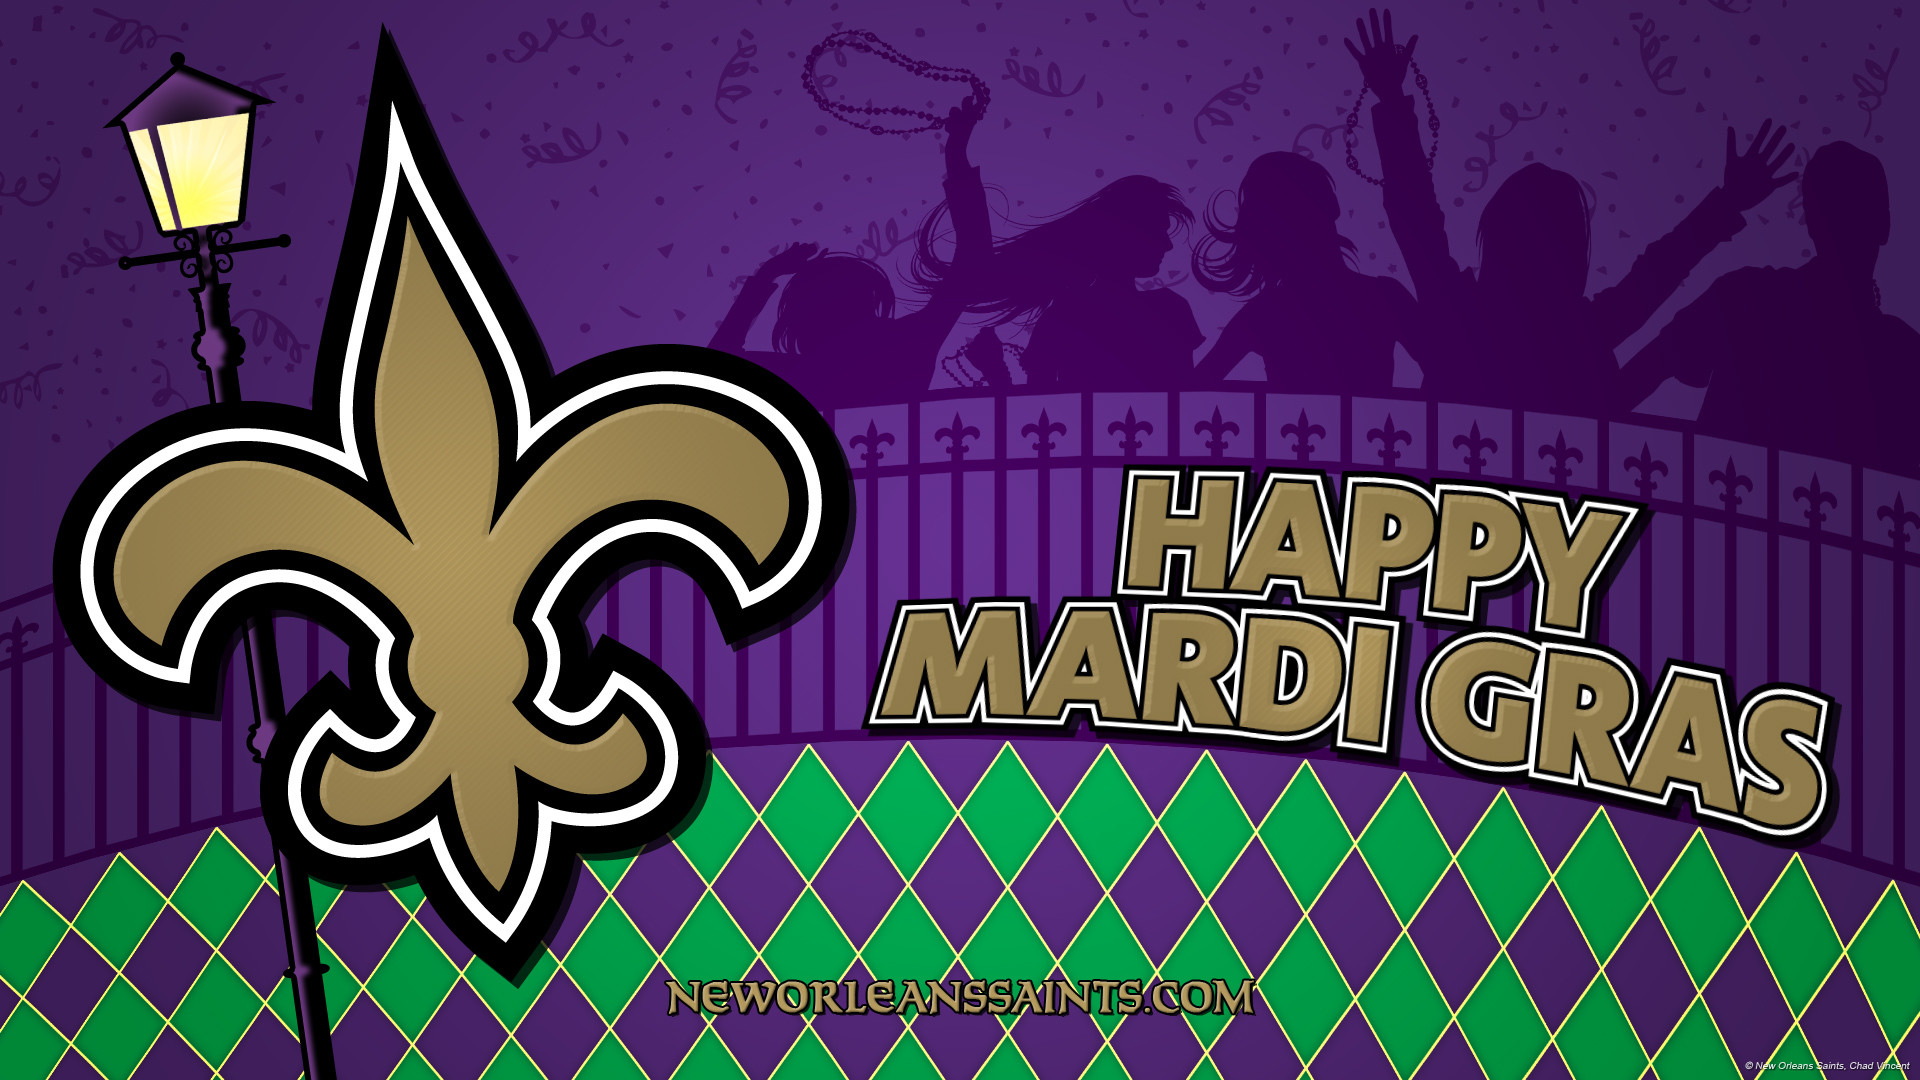 1920x1080 nfl new orleans saints happy mardi gras